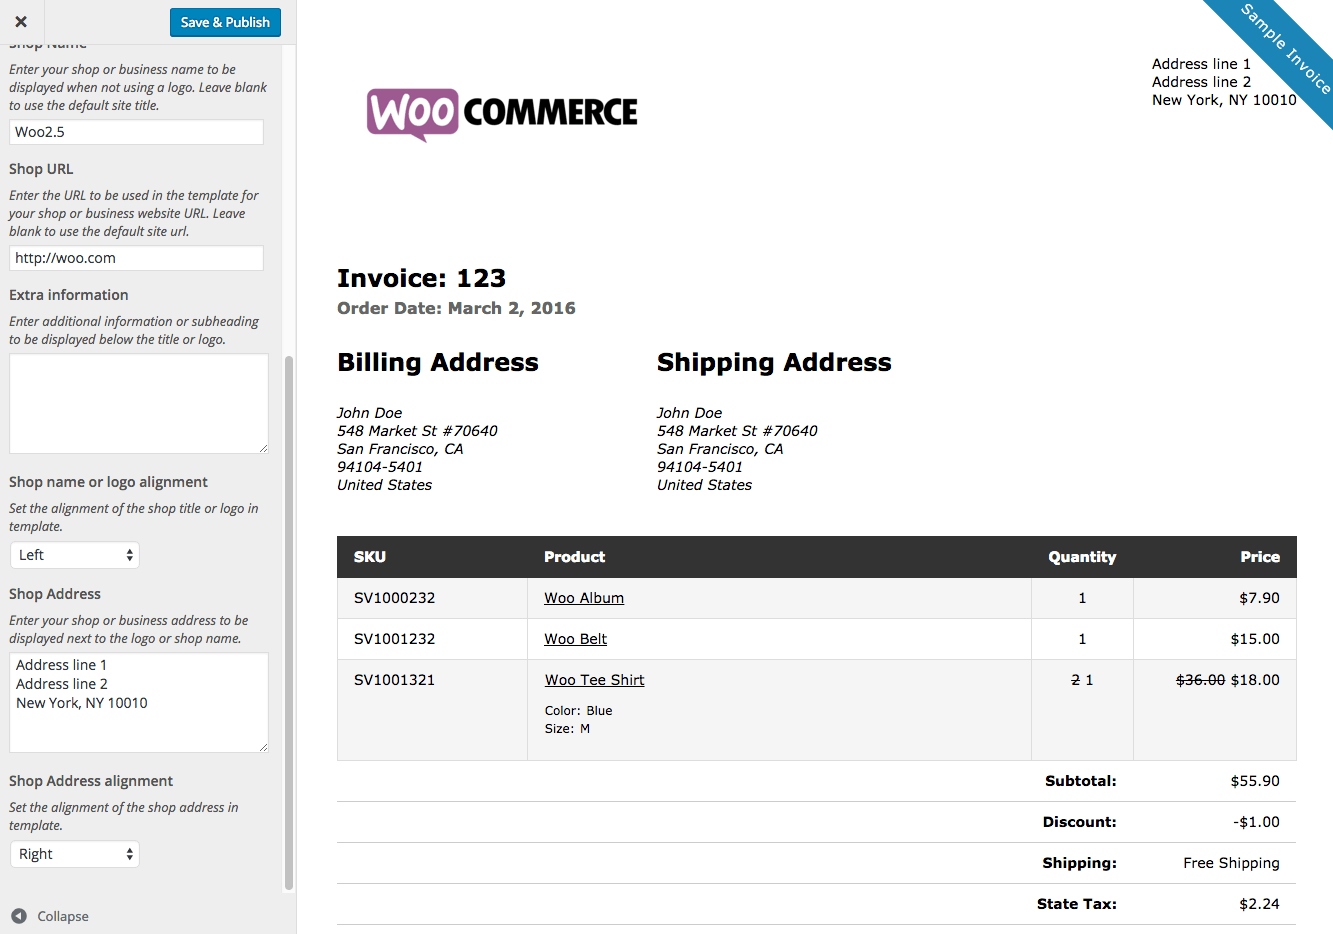 Sandiegolocksmithsus  Marvelous Woocommerce Print Invoices Amp Packing Lists  Woocommerce Docs With Likable Woocommerce Print Invoices  Packing Lists Customizer With Awesome No Receipts For Tax Return Also Government Tax Receipts In Addition Receipt Scanner Apps And Till Receipts As Well As Receipt Template In Word Additionally On Receipt Of Payment From Docswoocommercecom With Sandiegolocksmithsus  Likable Woocommerce Print Invoices Amp Packing Lists  Woocommerce Docs With Awesome Woocommerce Print Invoices  Packing Lists Customizer And Marvelous No Receipts For Tax Return Also Government Tax Receipts In Addition Receipt Scanner Apps From Docswoocommercecom